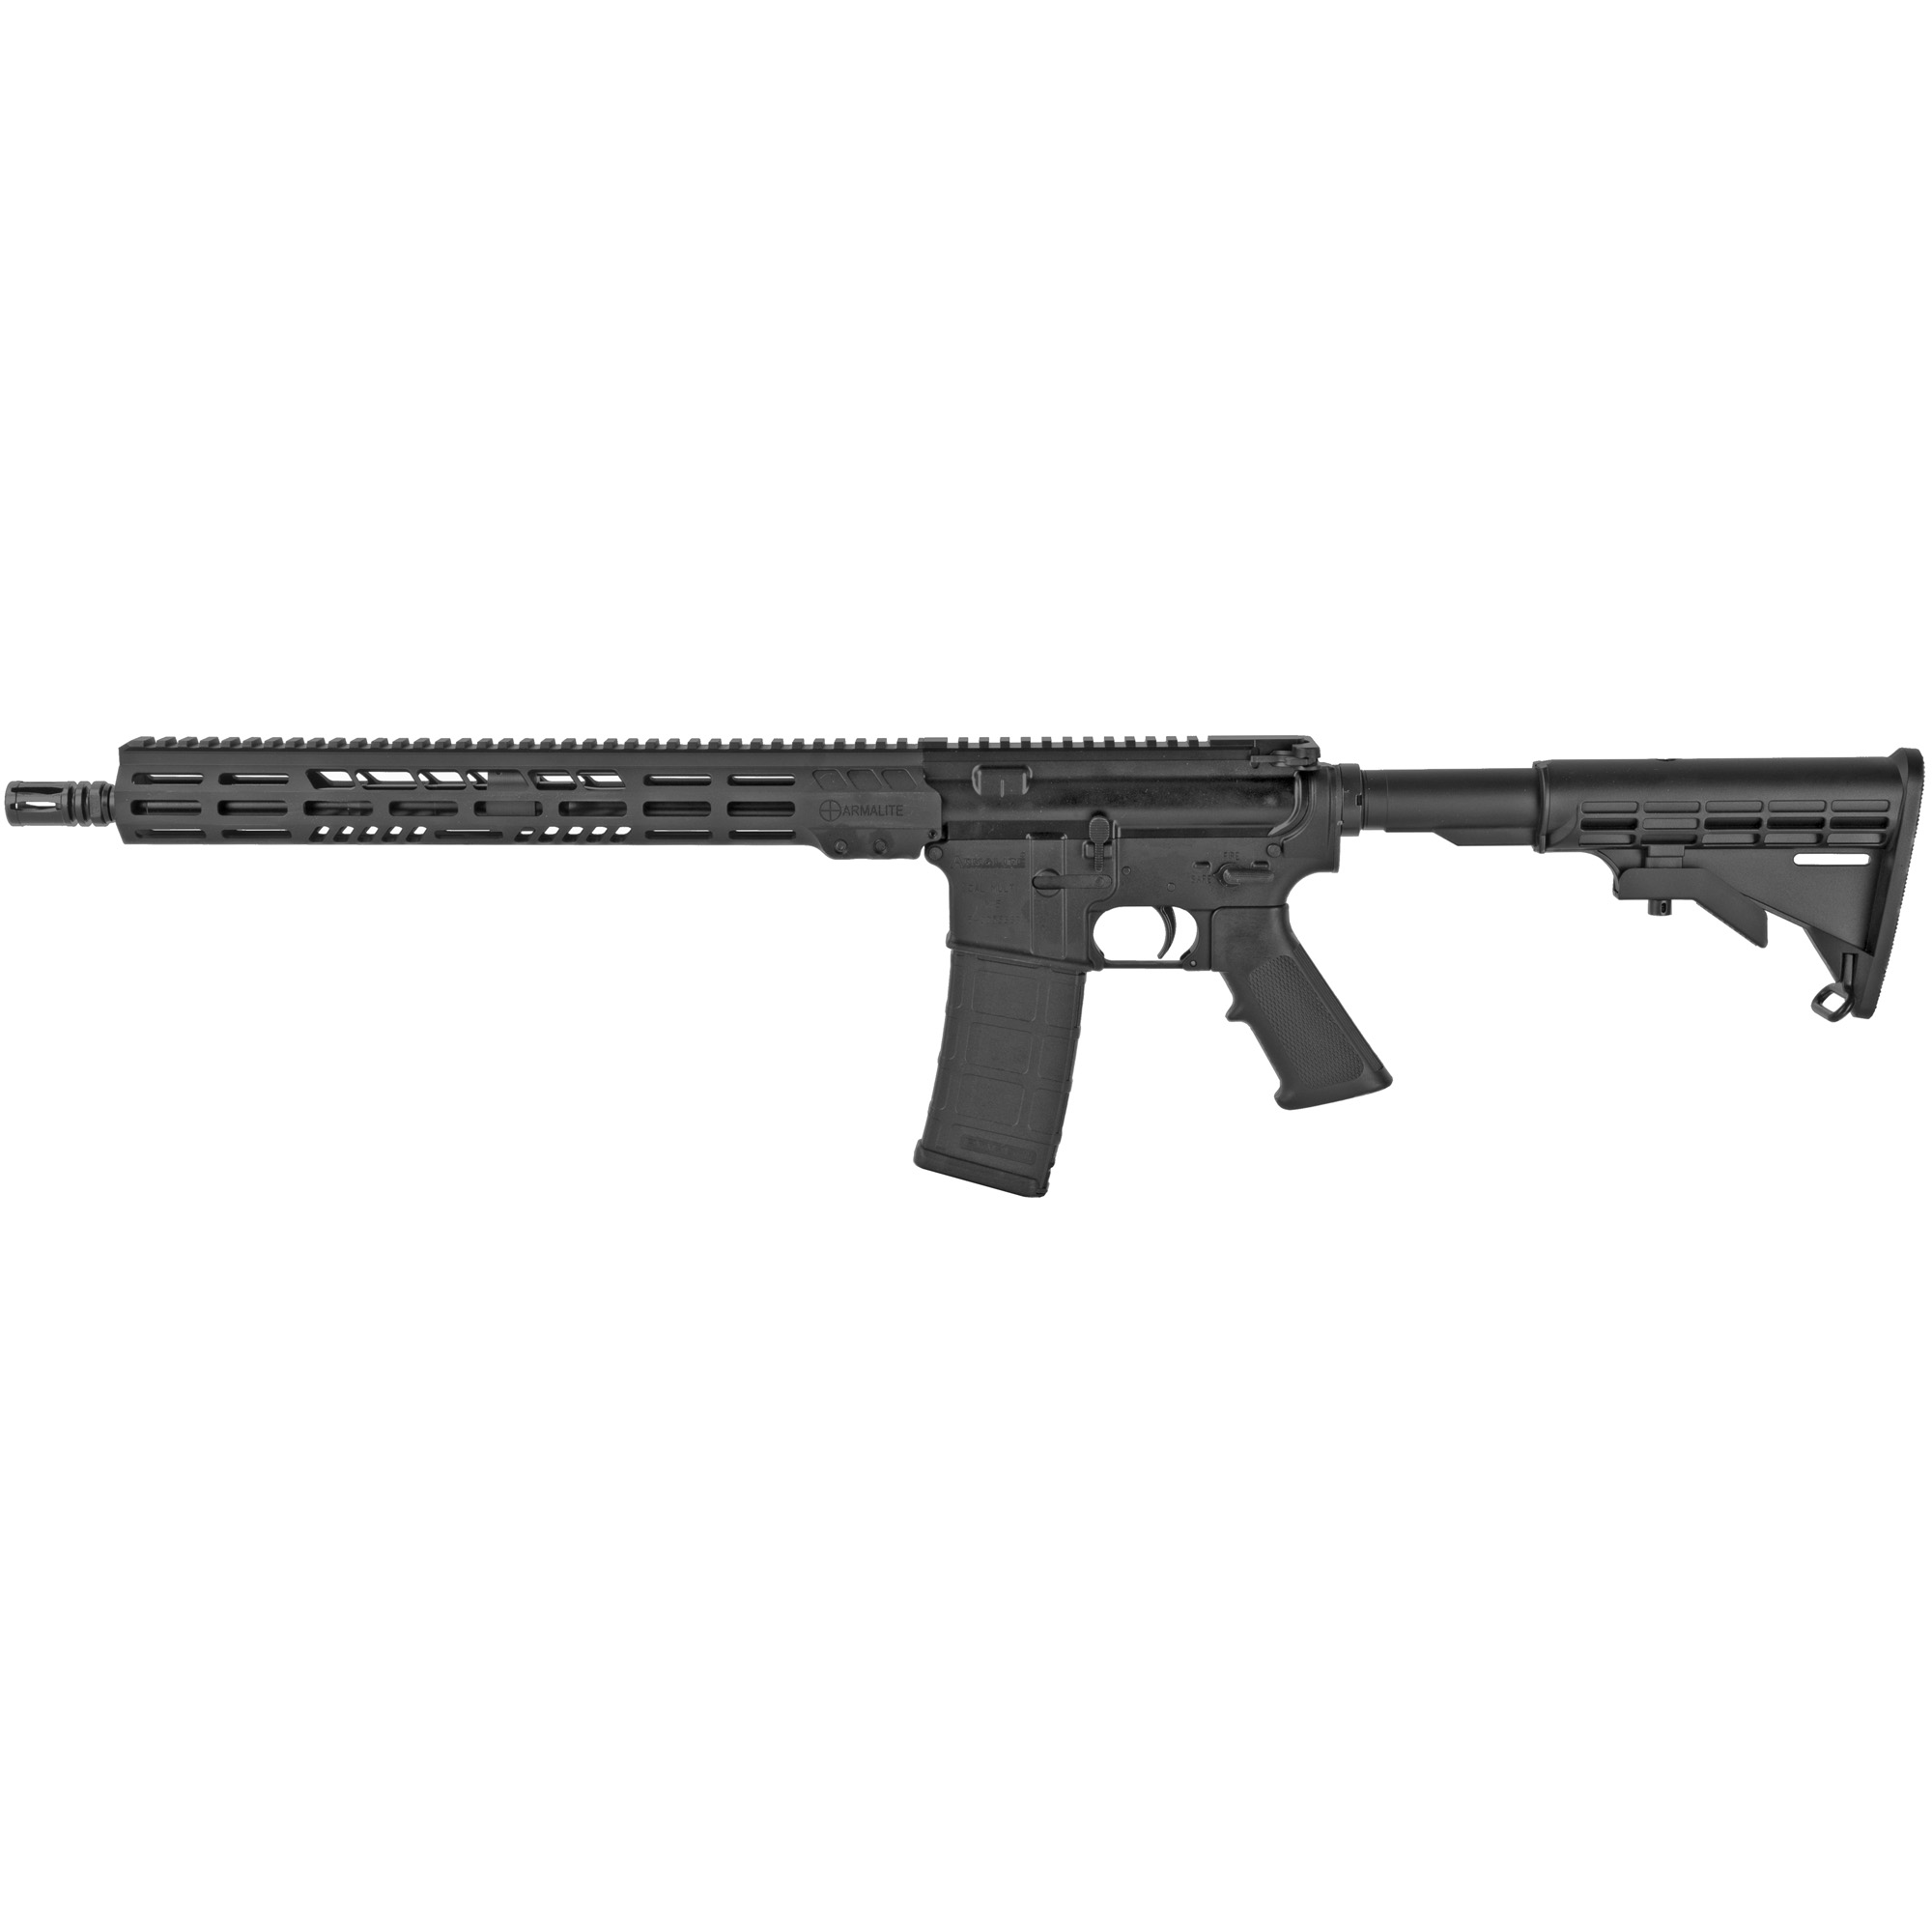 """The M-15(TM) Light Tactical Carbine (LTC) provides shooters with a versatile"""" hard-hitting modern sporting rifle in a streamlined and affordable package. With features such as Armalite's own free-floating tactical Key-Mod handguard and low-profile gas block"""" the Light Tactical Carbine carries a modern profile in a light and scalable package."""